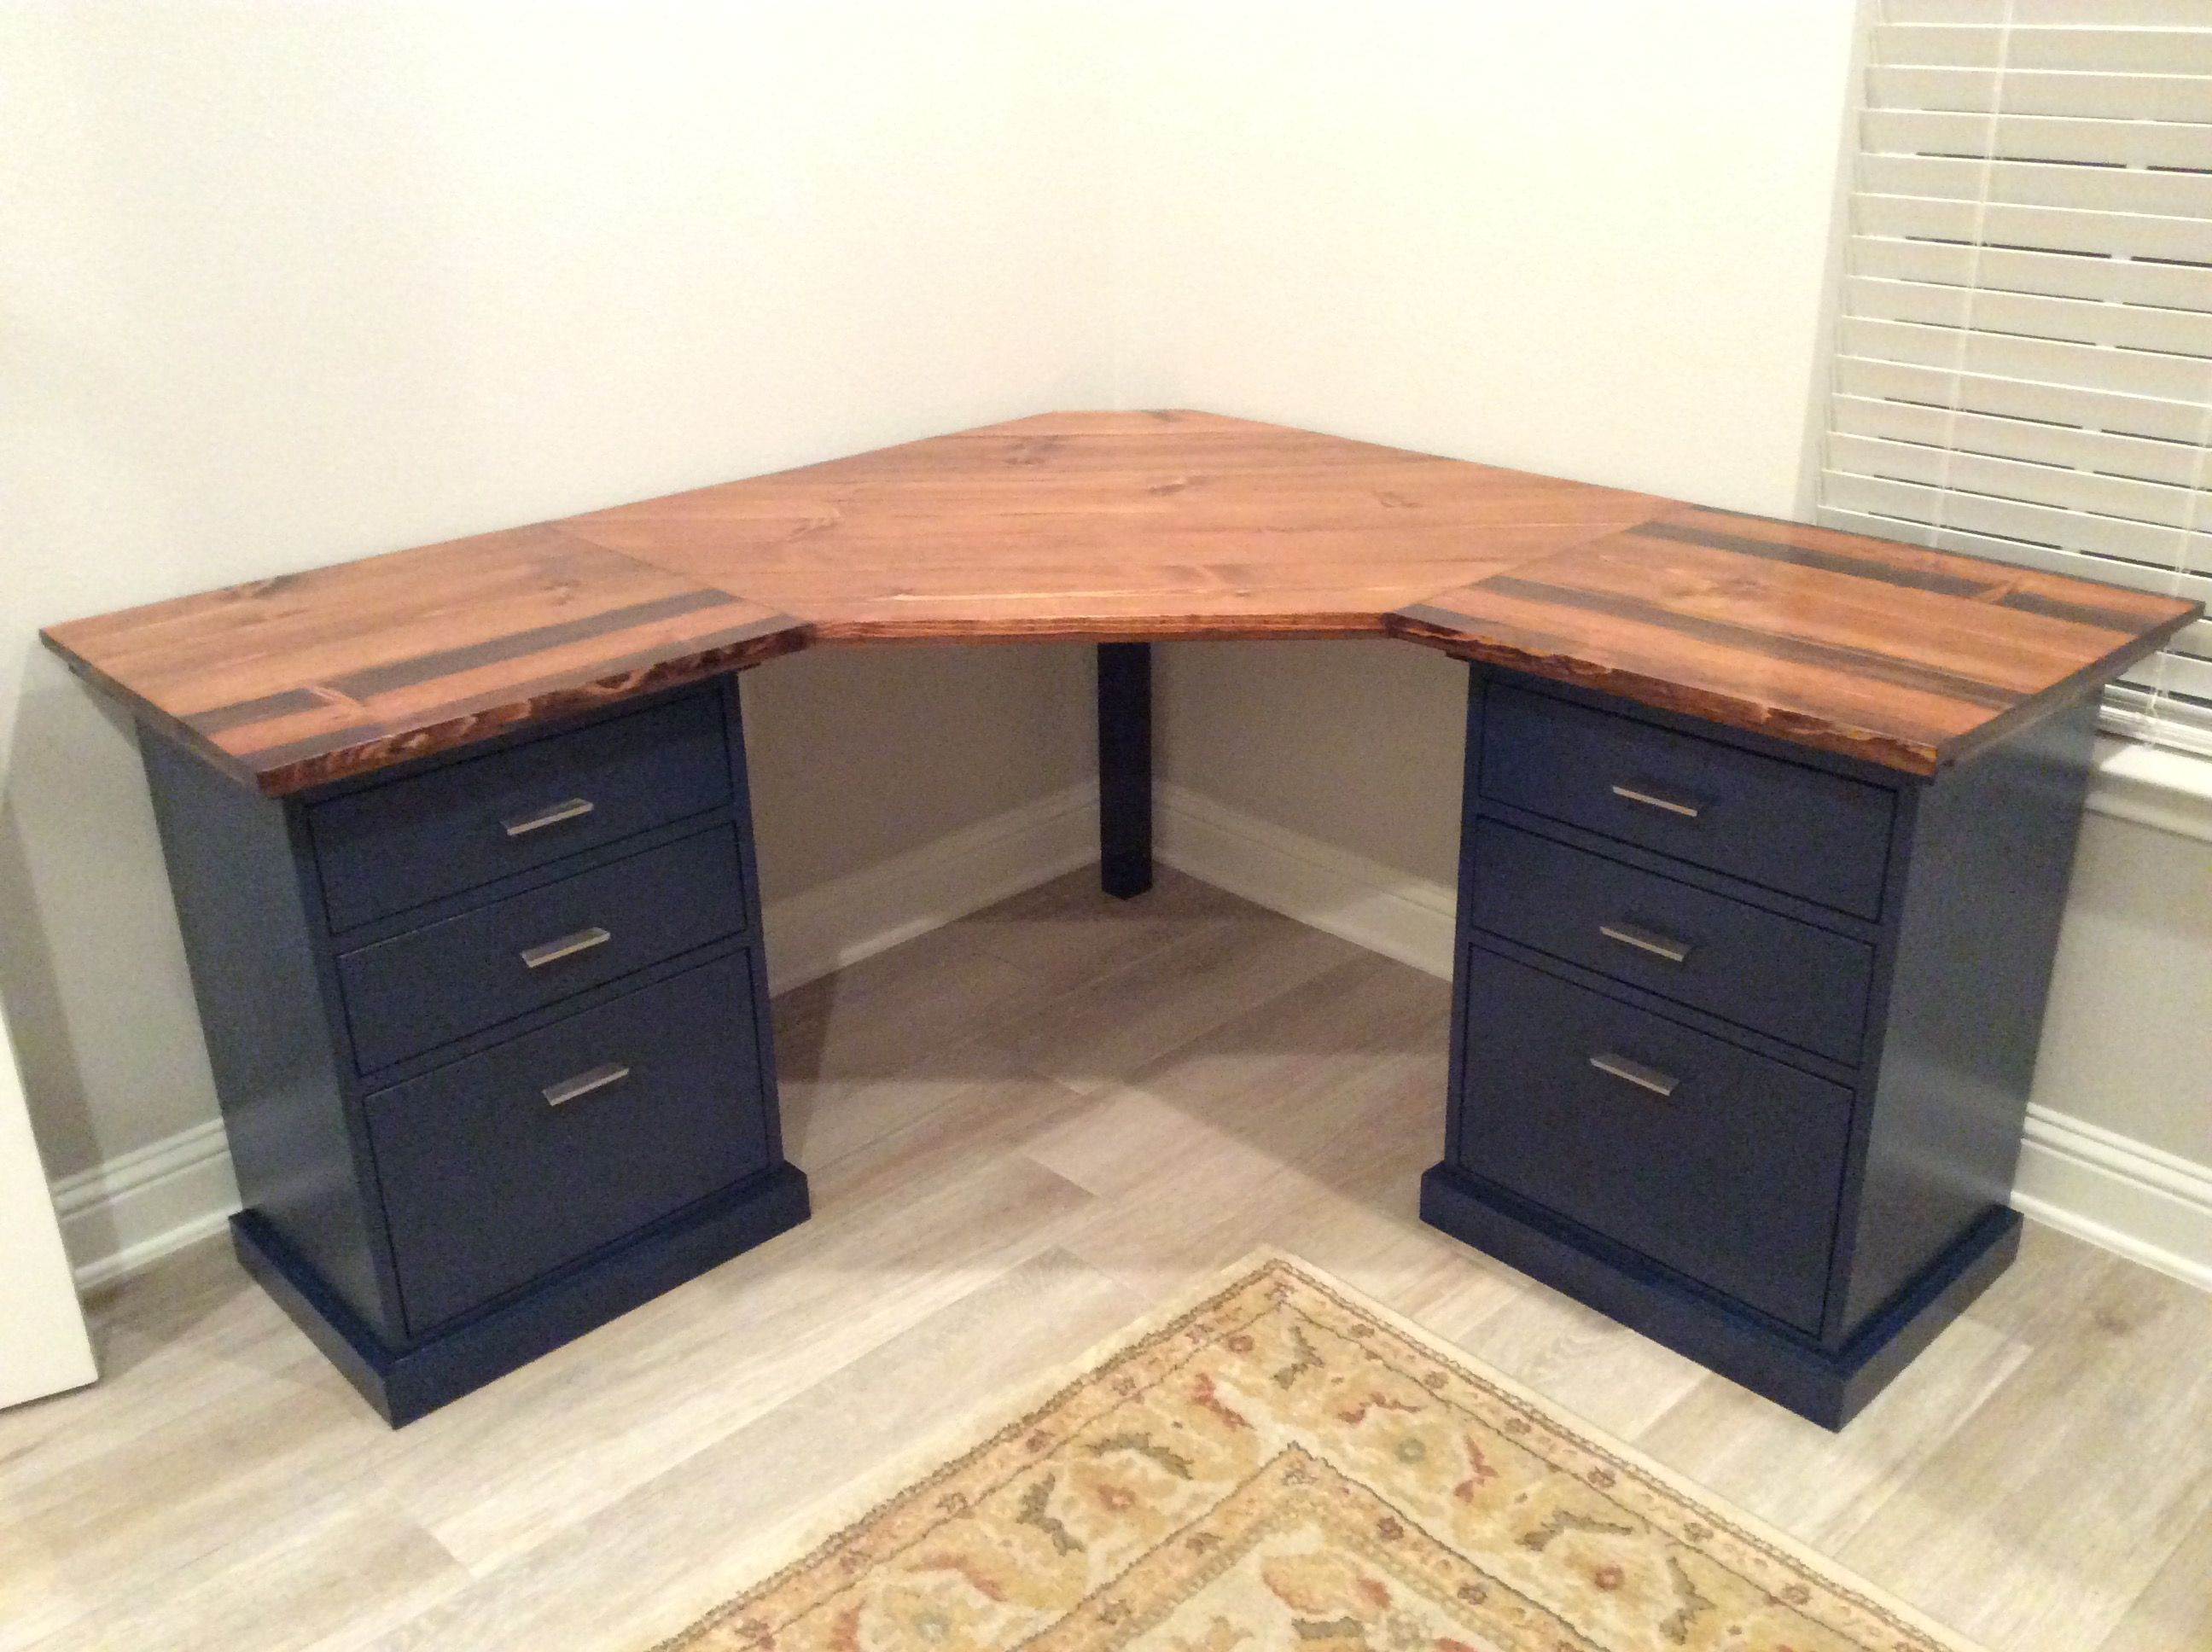 Colorful Custom Bedford Corner Desk   Do It Yourself Home Projects from Ana White #DIYHomeDecor